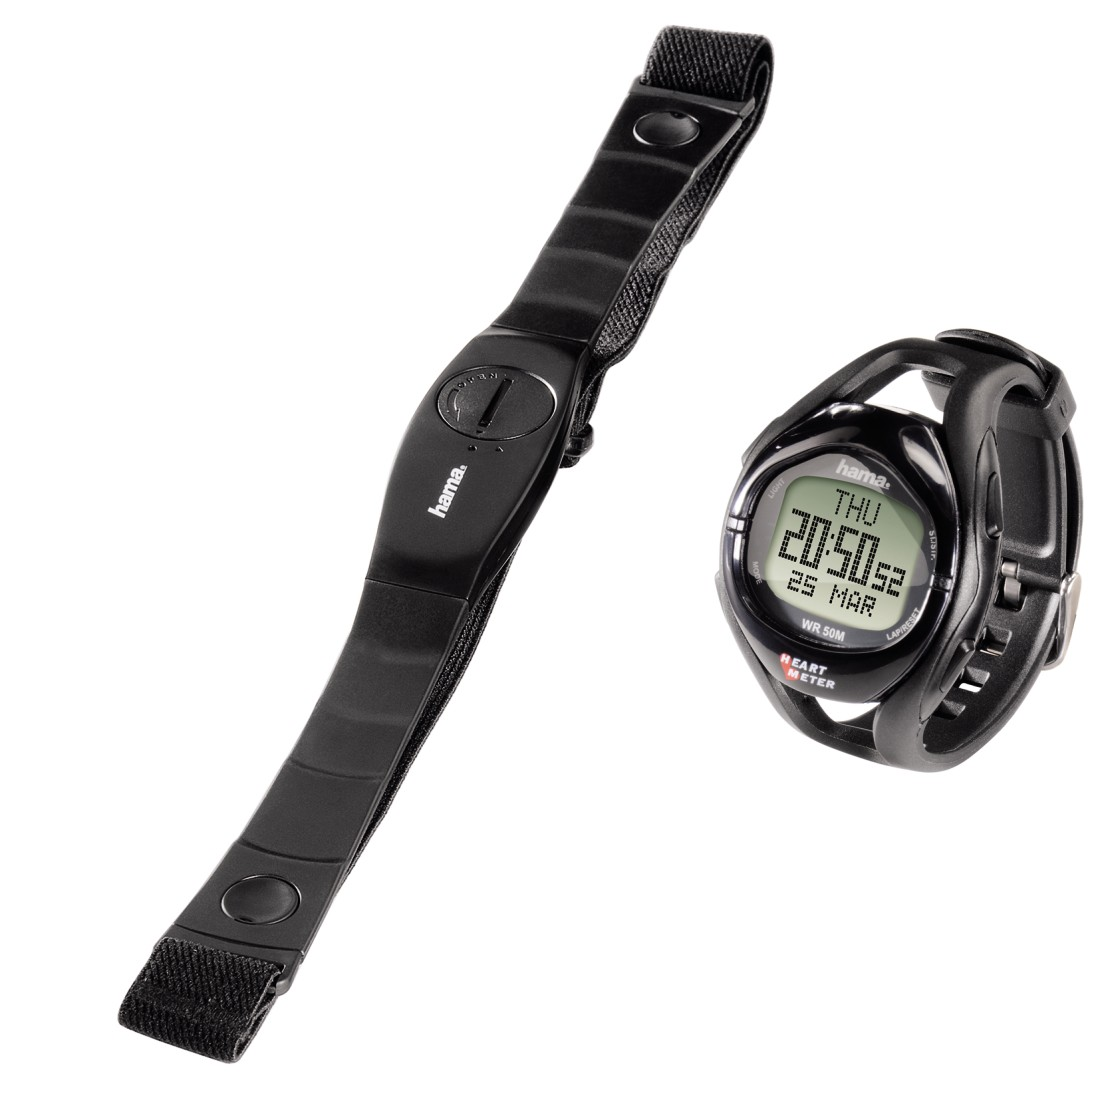 abx High-Res Image - Hama, HRM-108 Heart Rate Monitor, black